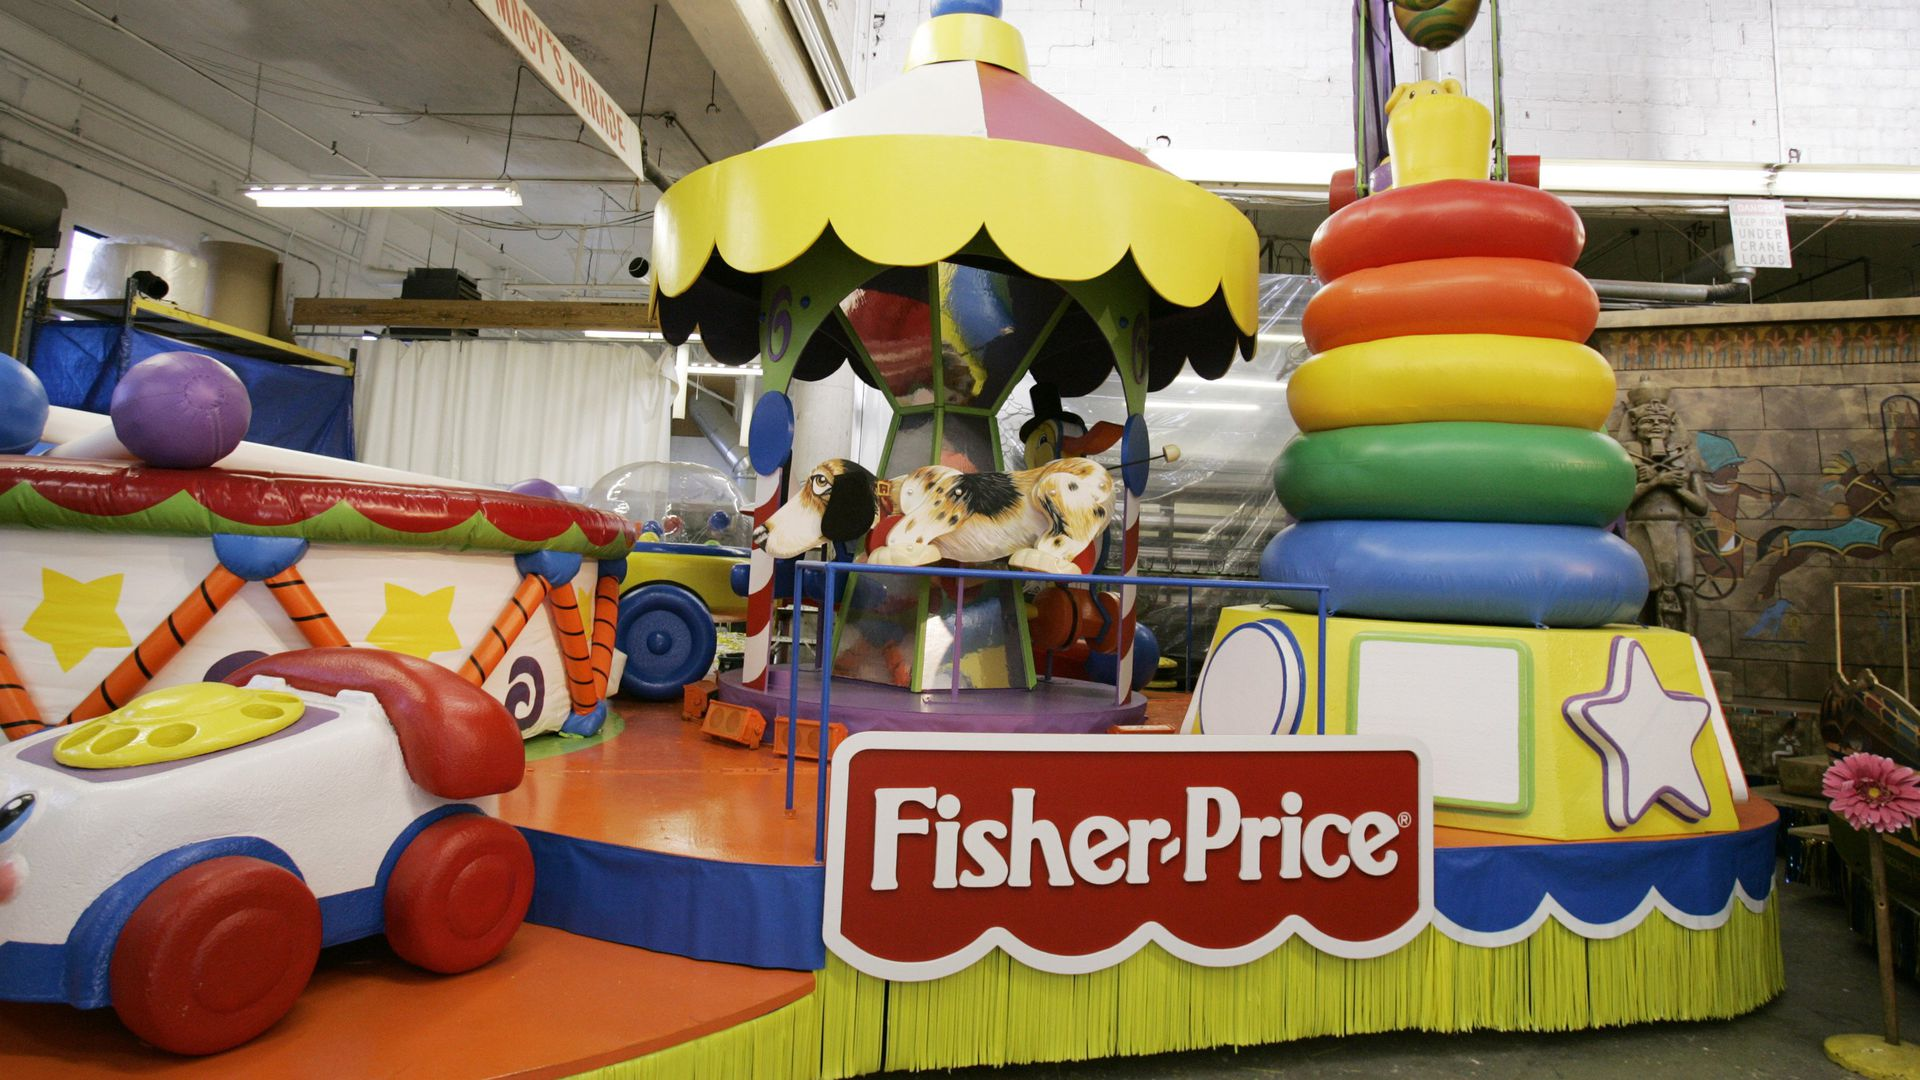 2fdf904c08fd Fisher-Price recalling sleepers after dozens of babies died - Axios